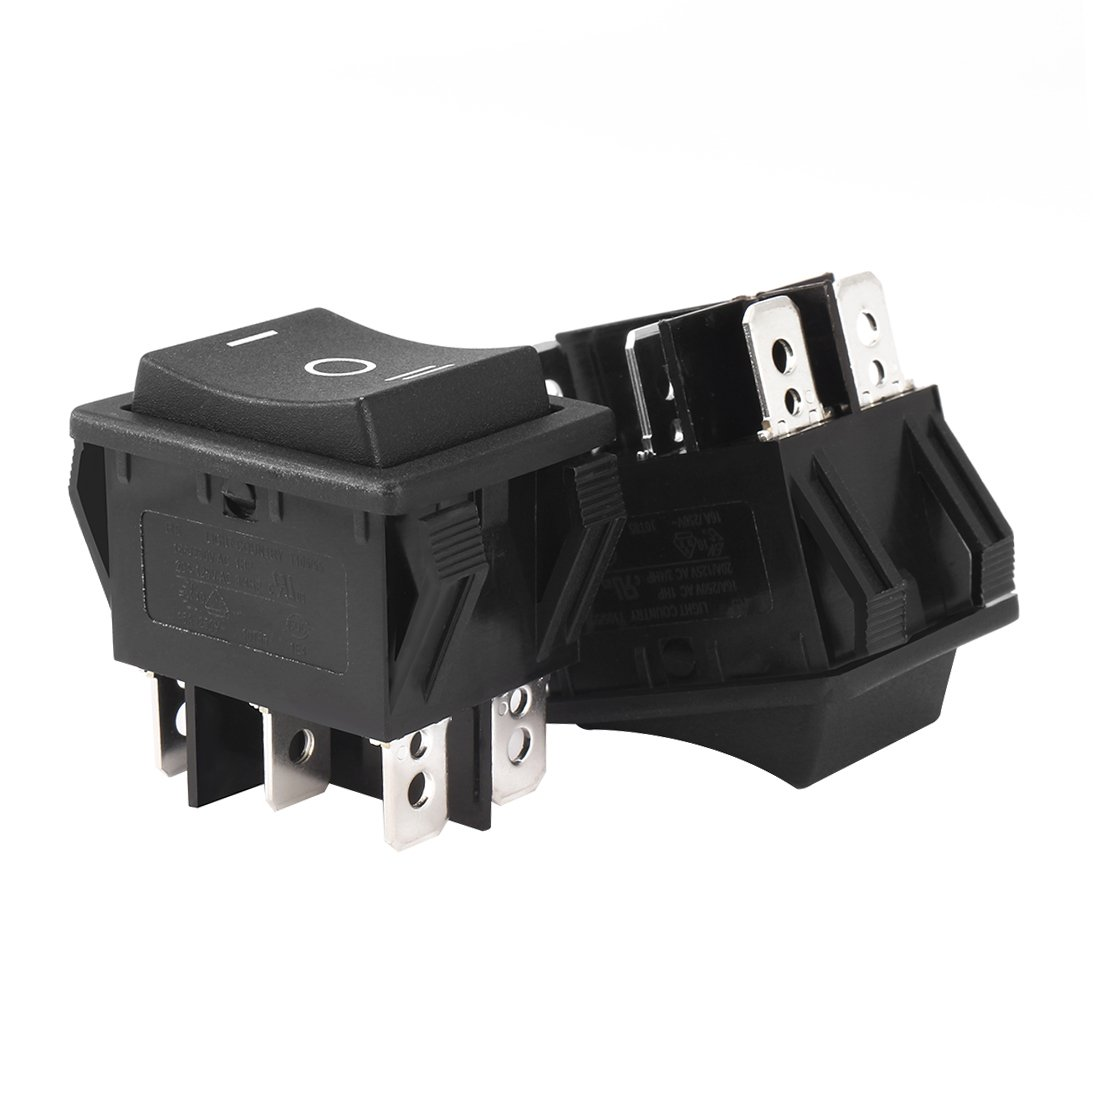 Aexit 5Pcs UL Winch Accessories Listed AC 20A/125V 16A/250V DPDT 6 Terminal 3 Position Boat Rocker Switches Switch Black